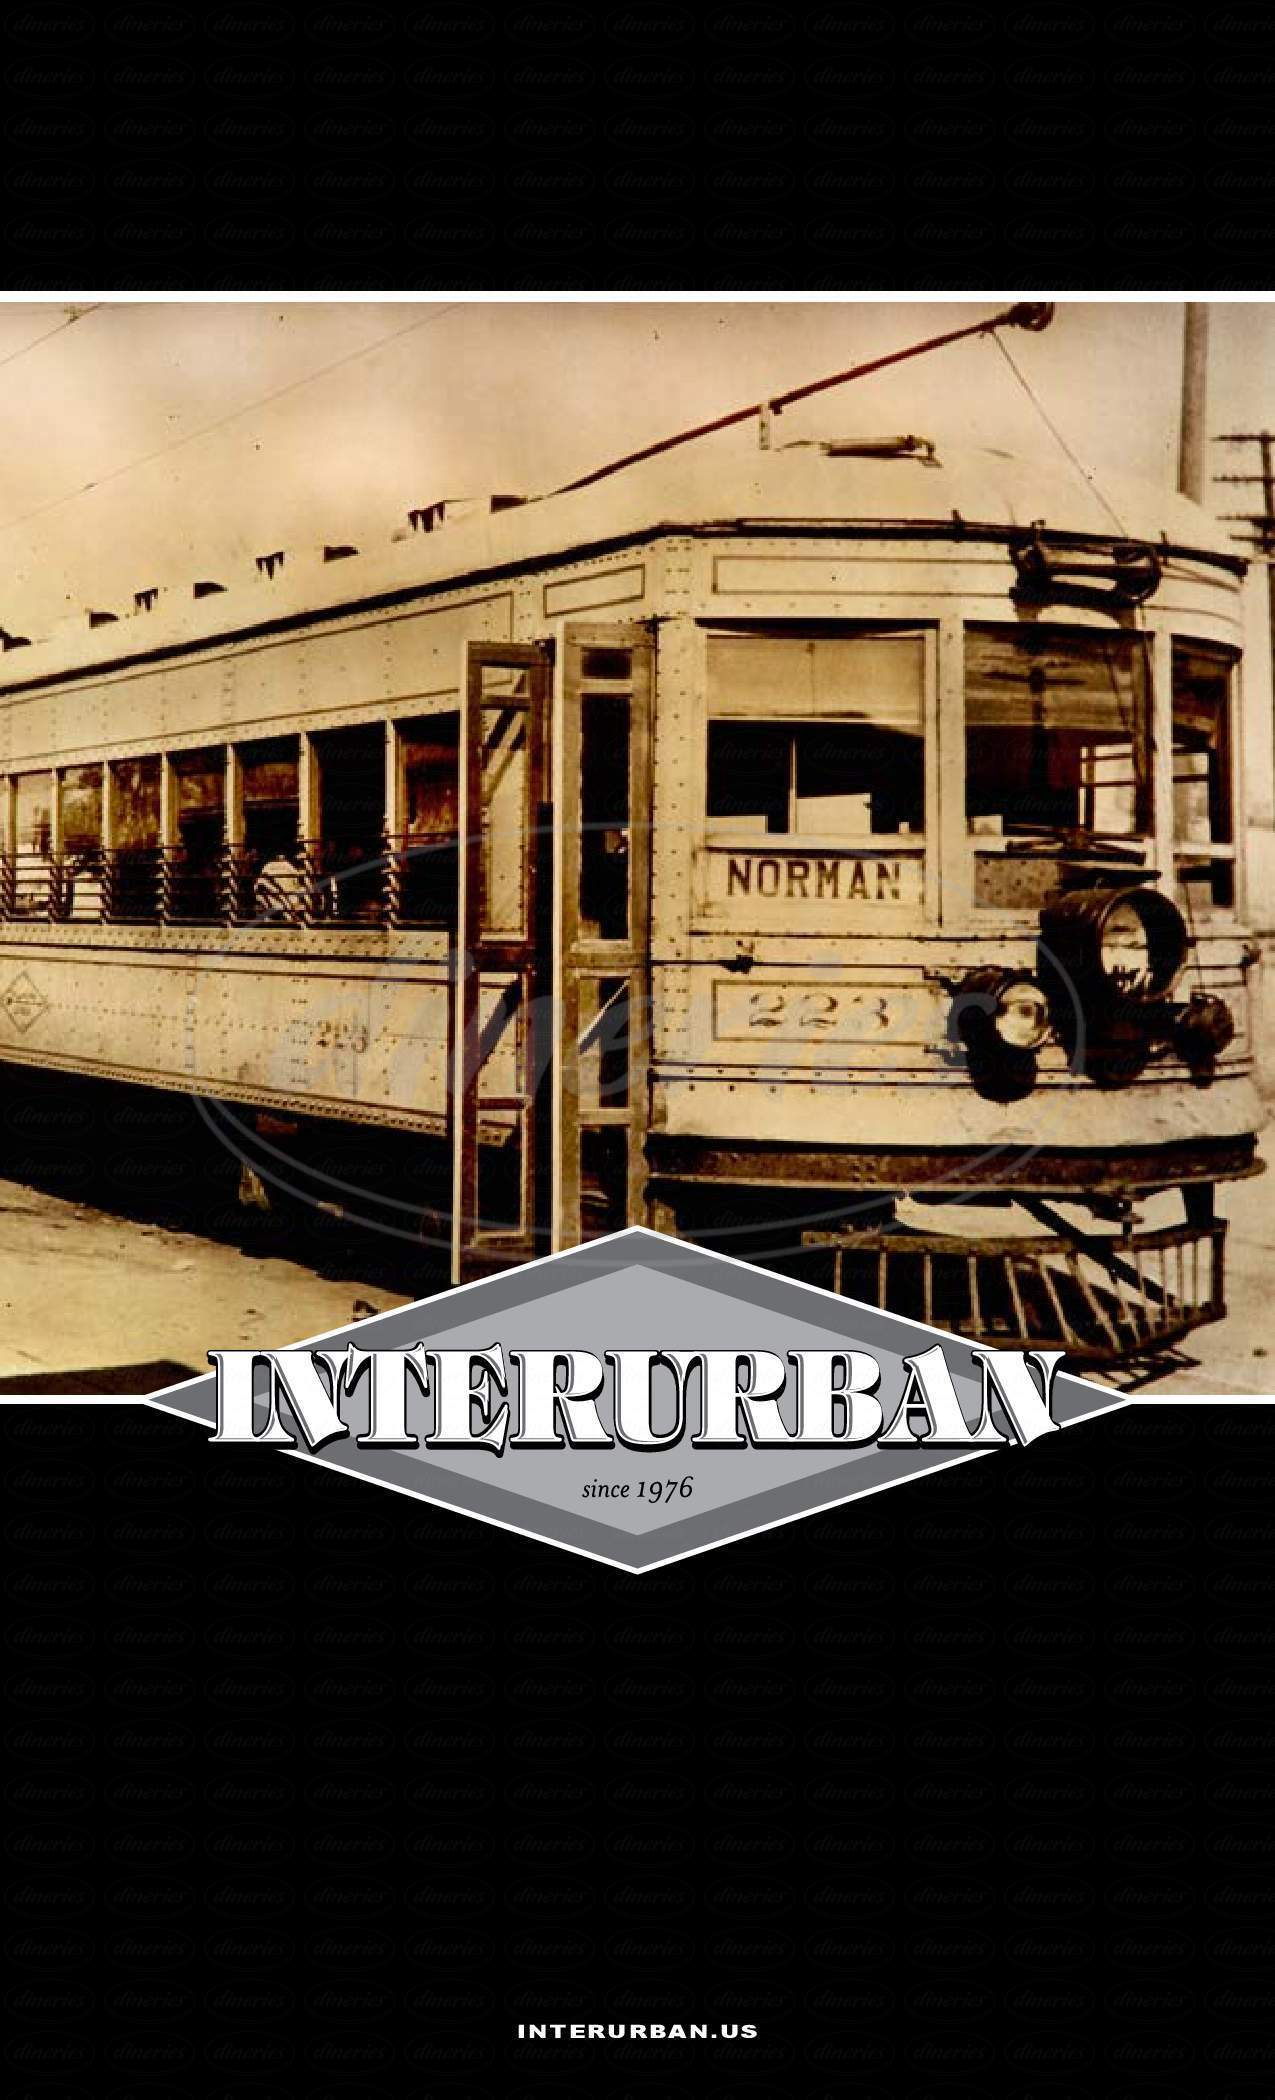 menu for Interurban